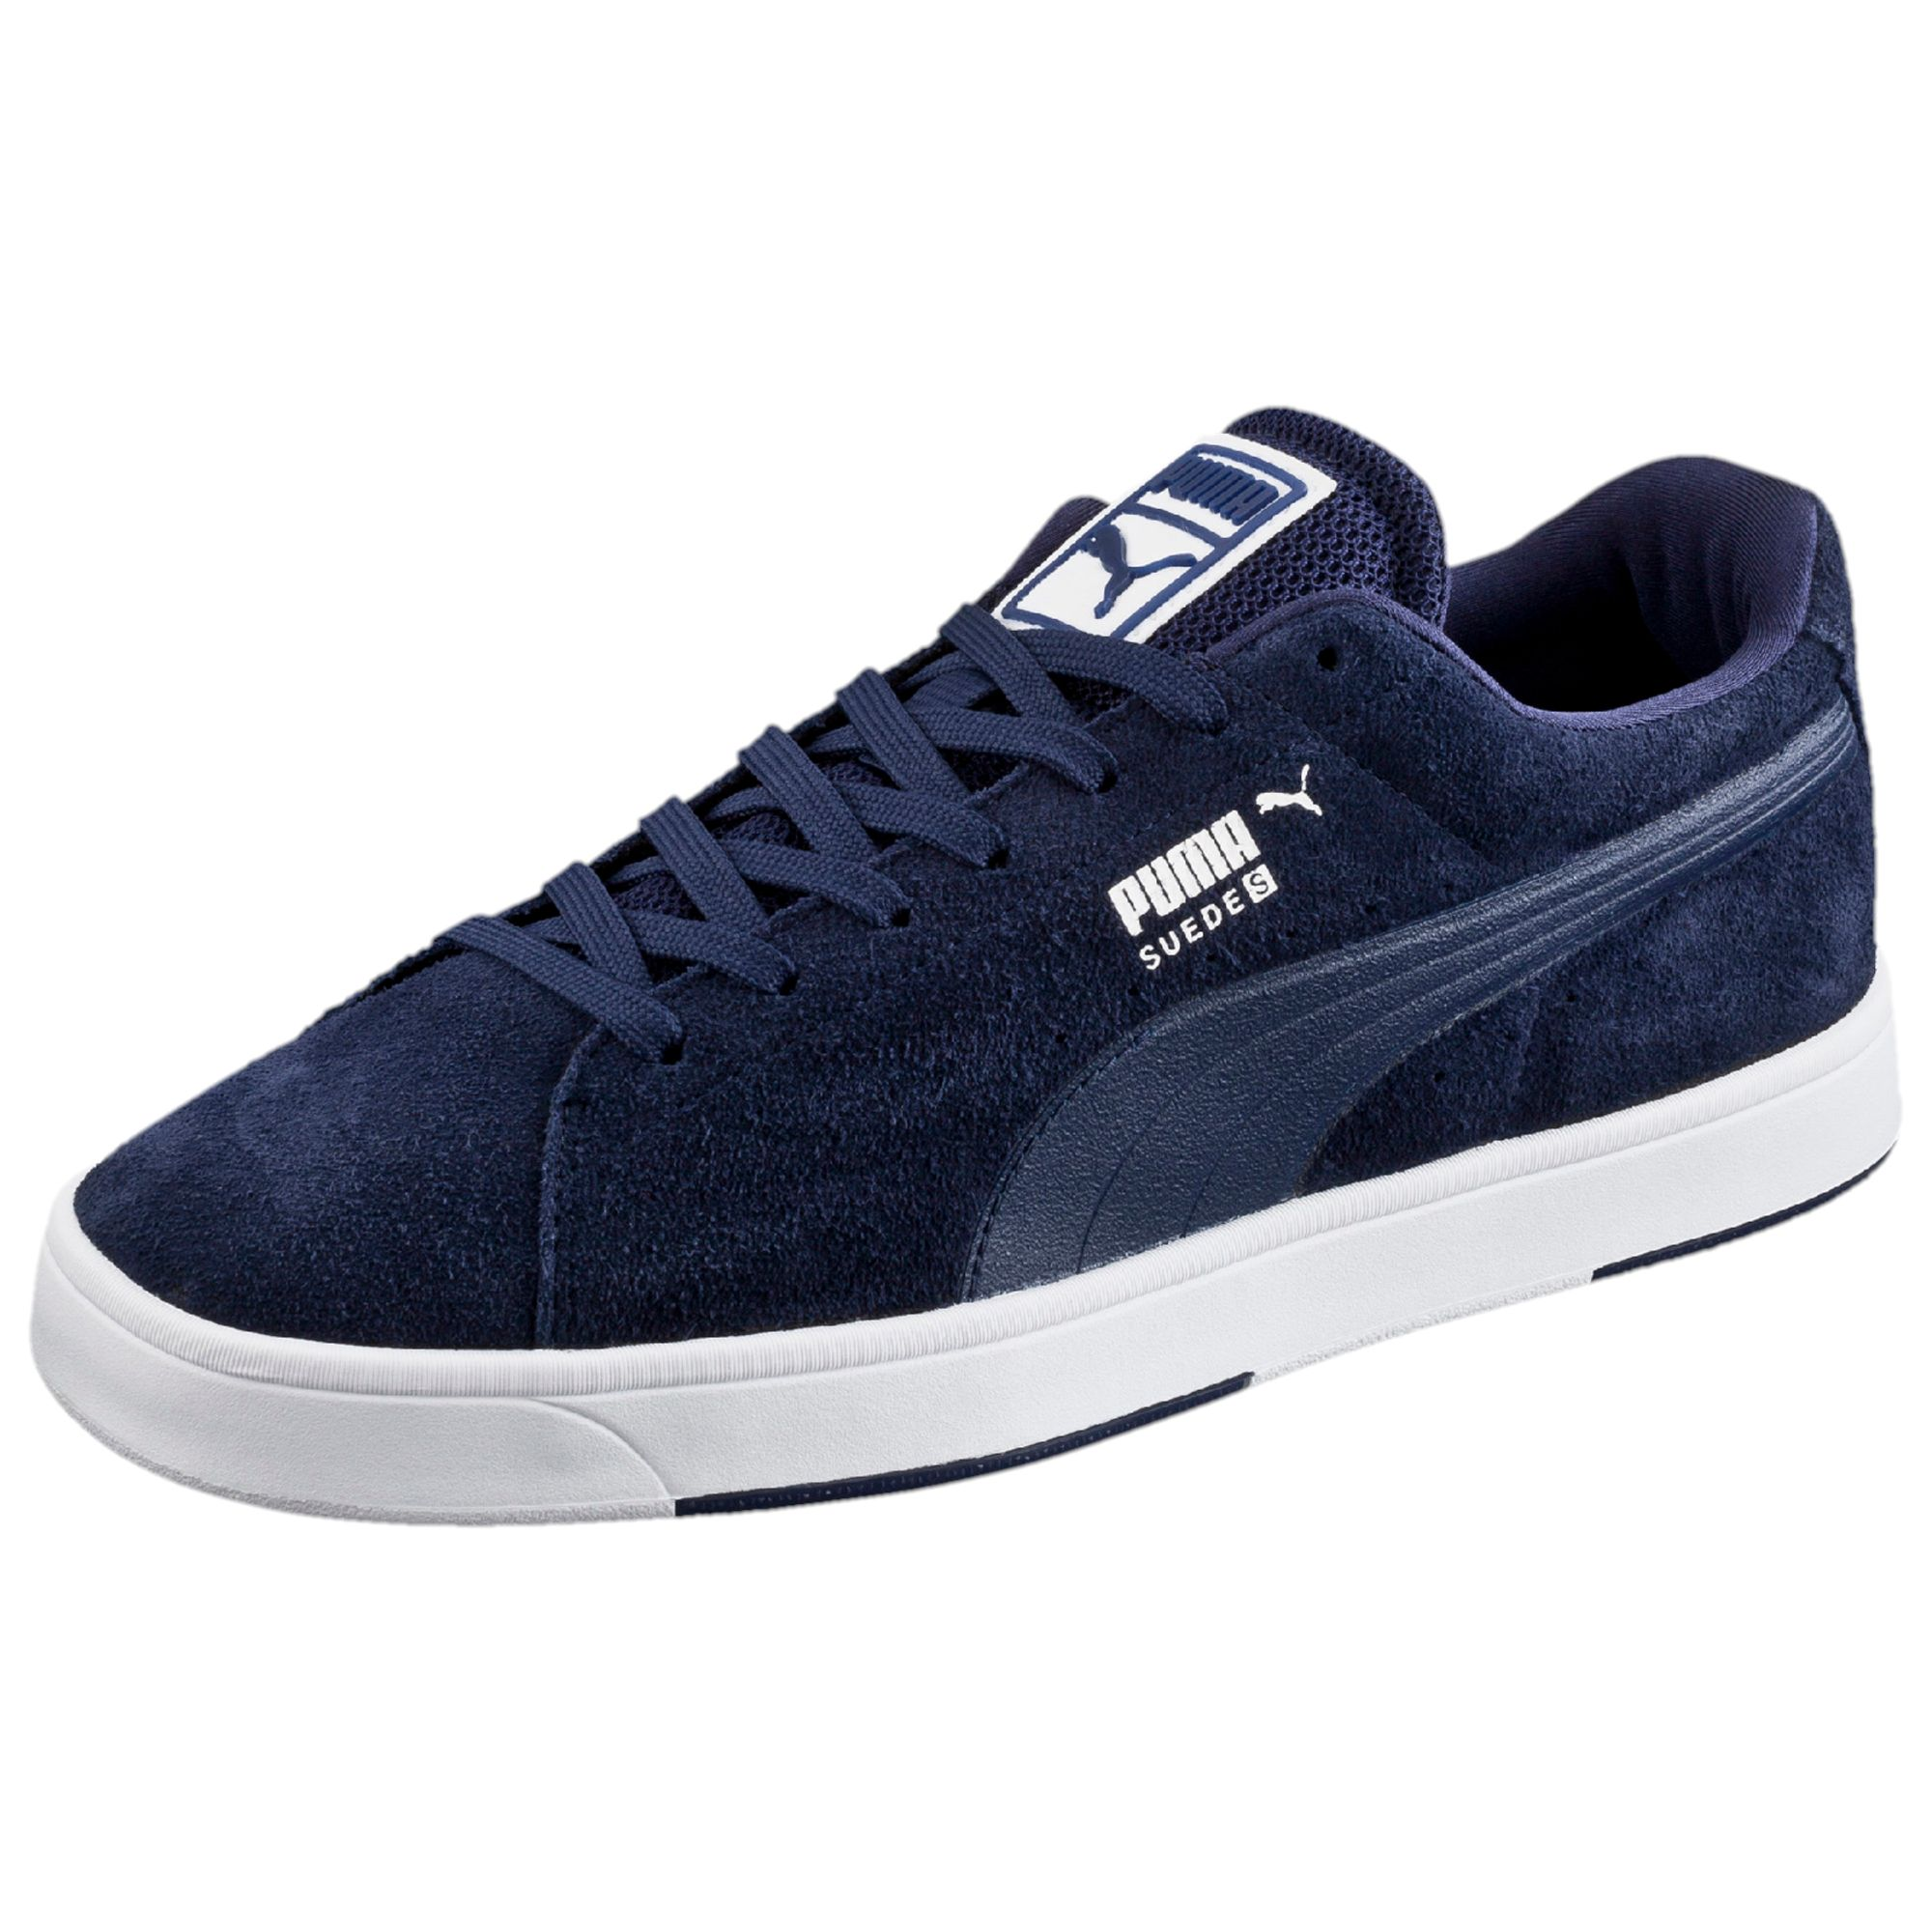 29e663f4db8 PUMA Suede S Modern Tech Trainers Footwear Sneakers Evolution Unisex ...